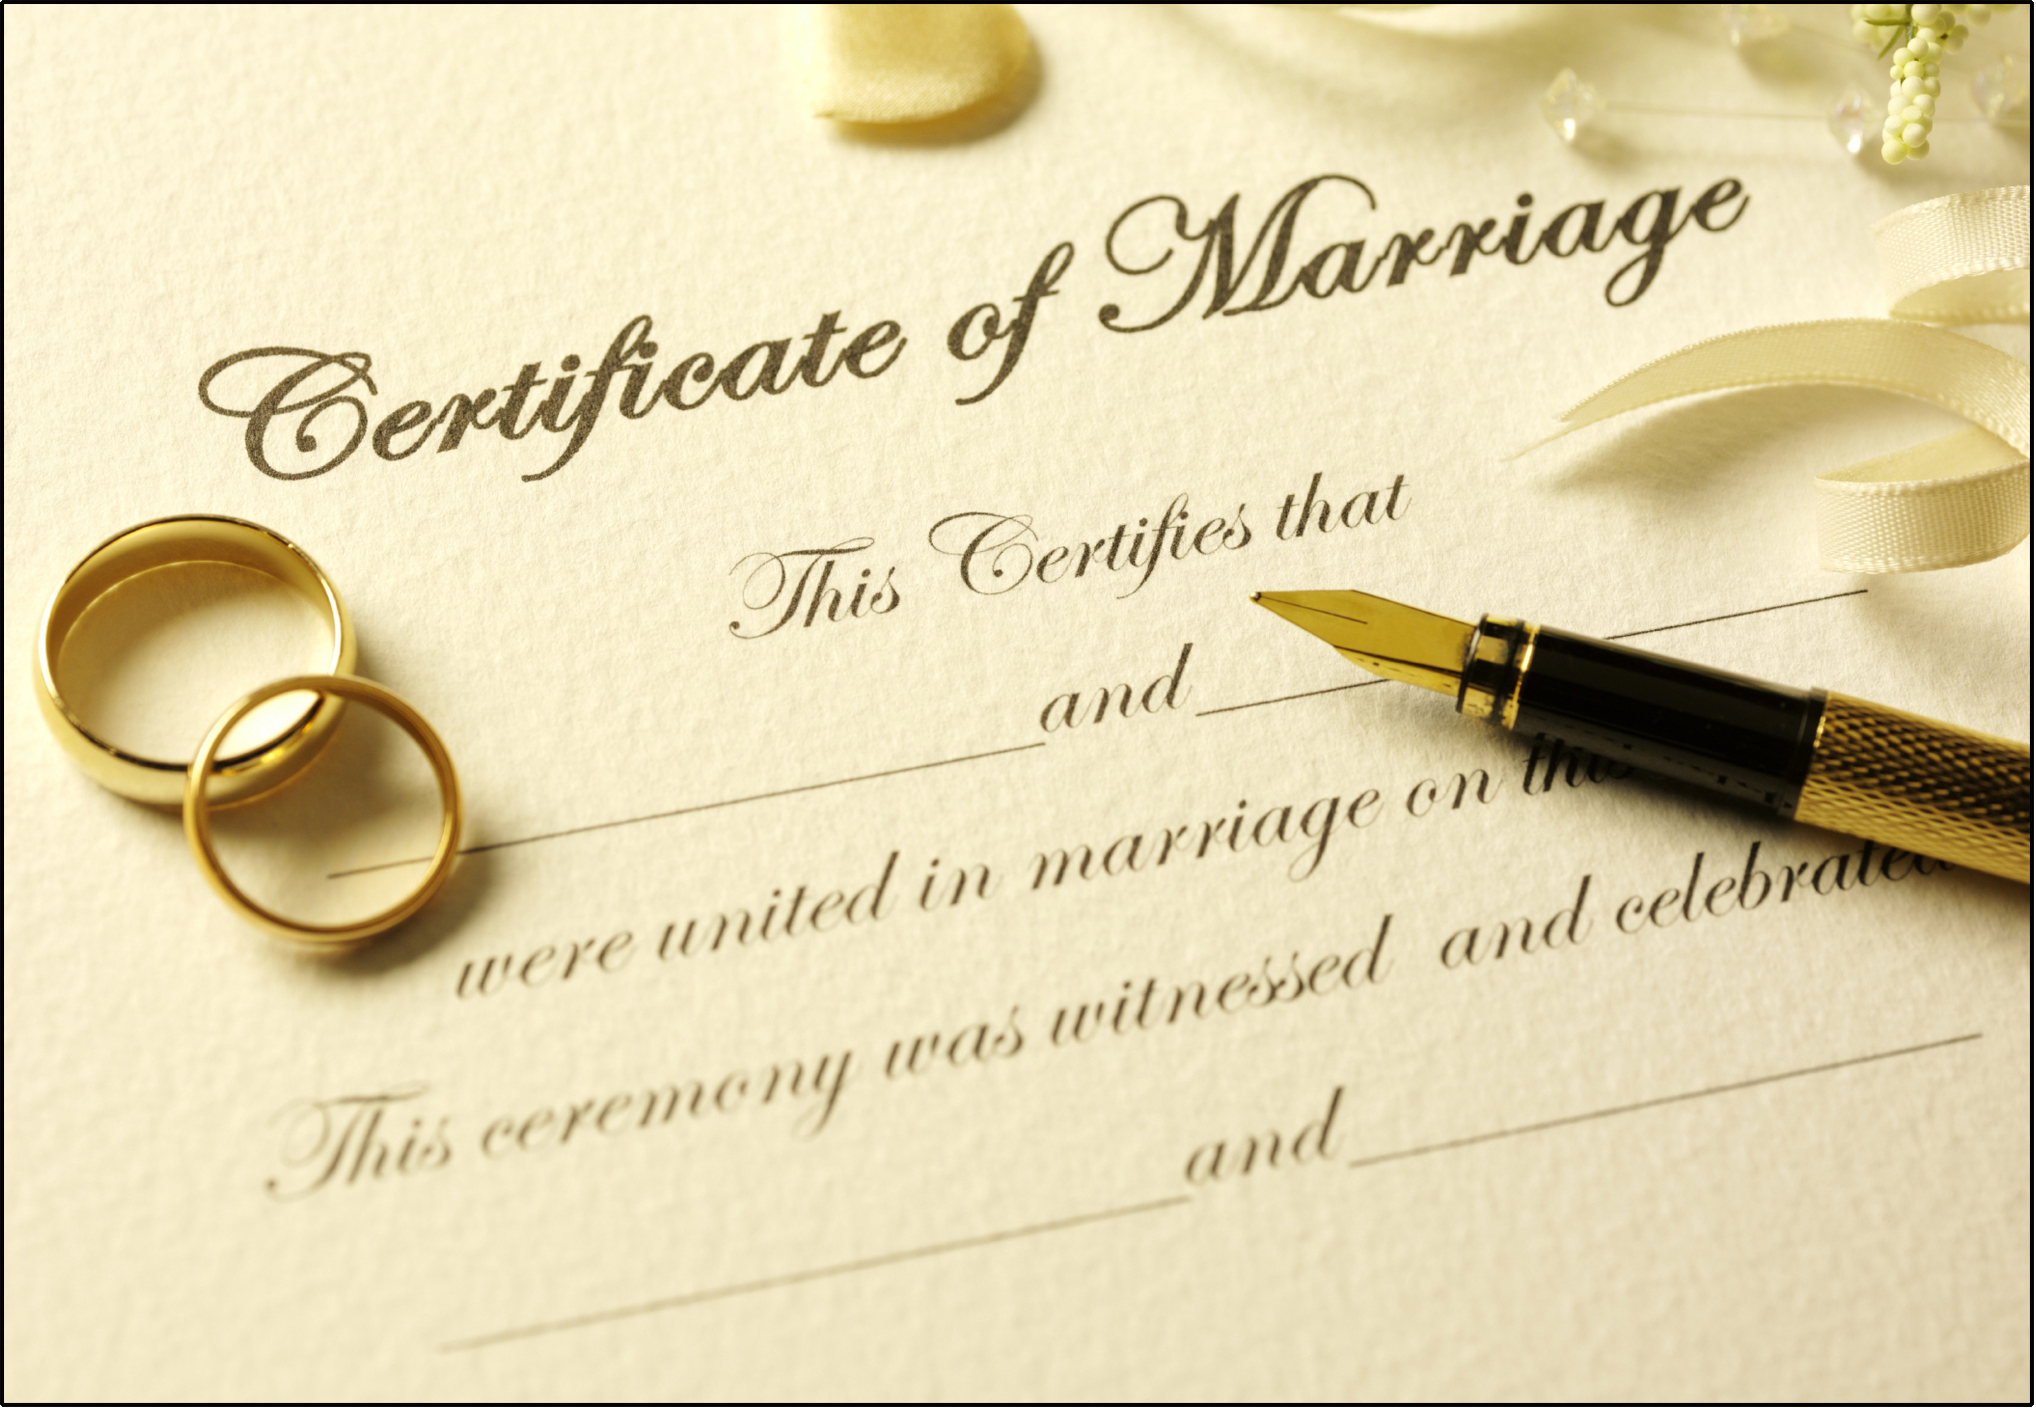 MarriageCivil Union – Marriage Certificate